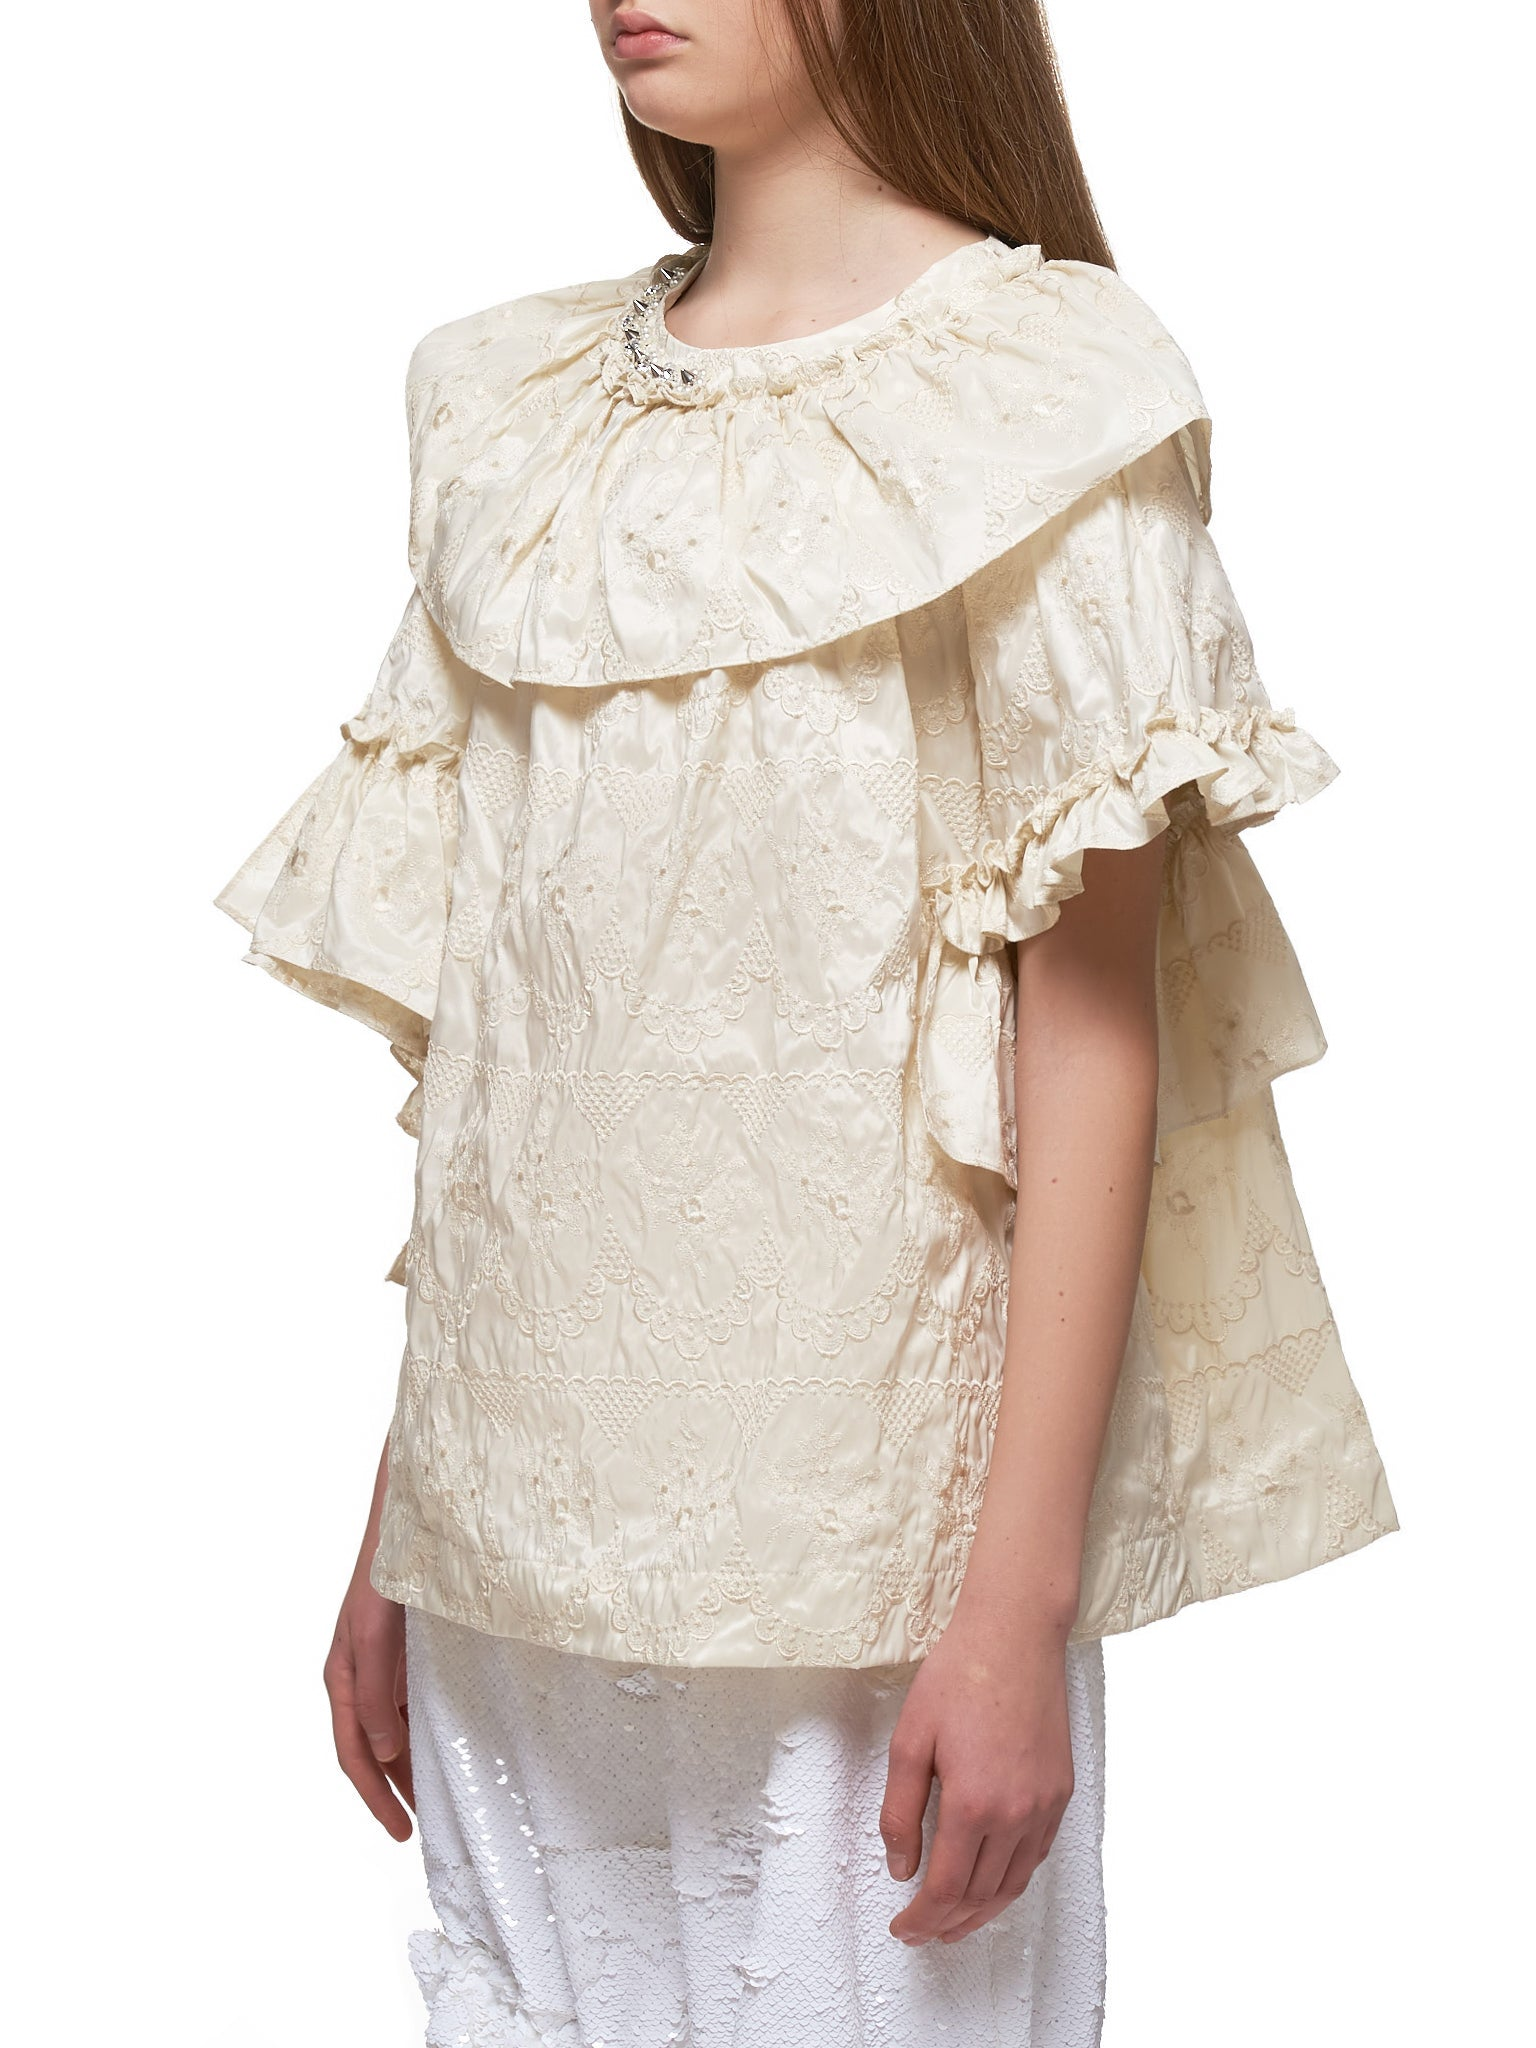 Simone Rocha Top - Hlorenzo Side